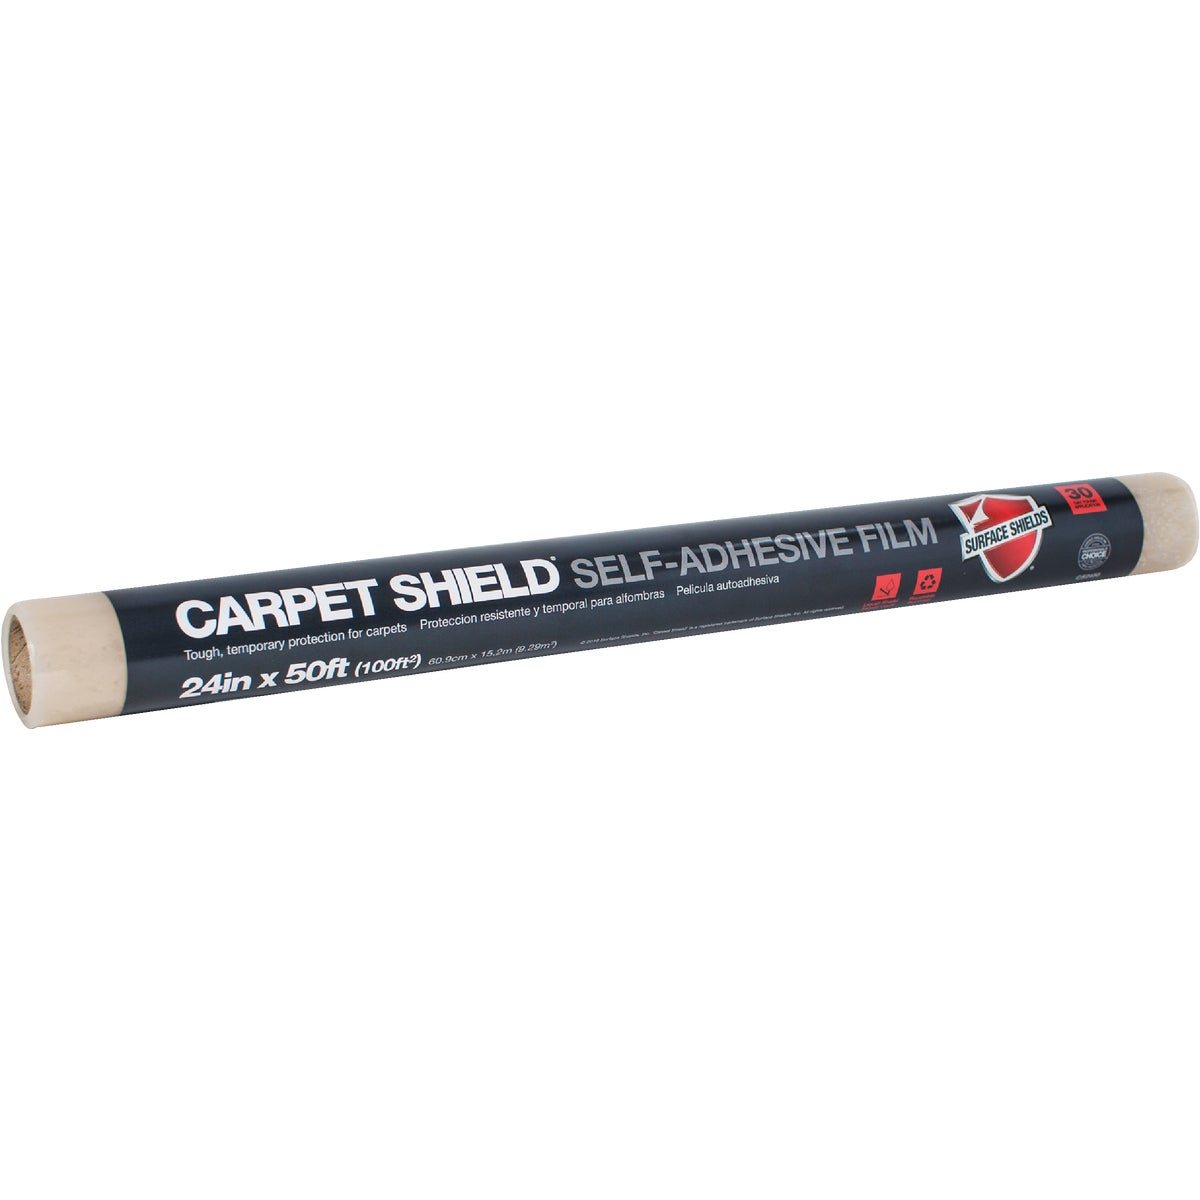 21X30 CARPET SHIELD